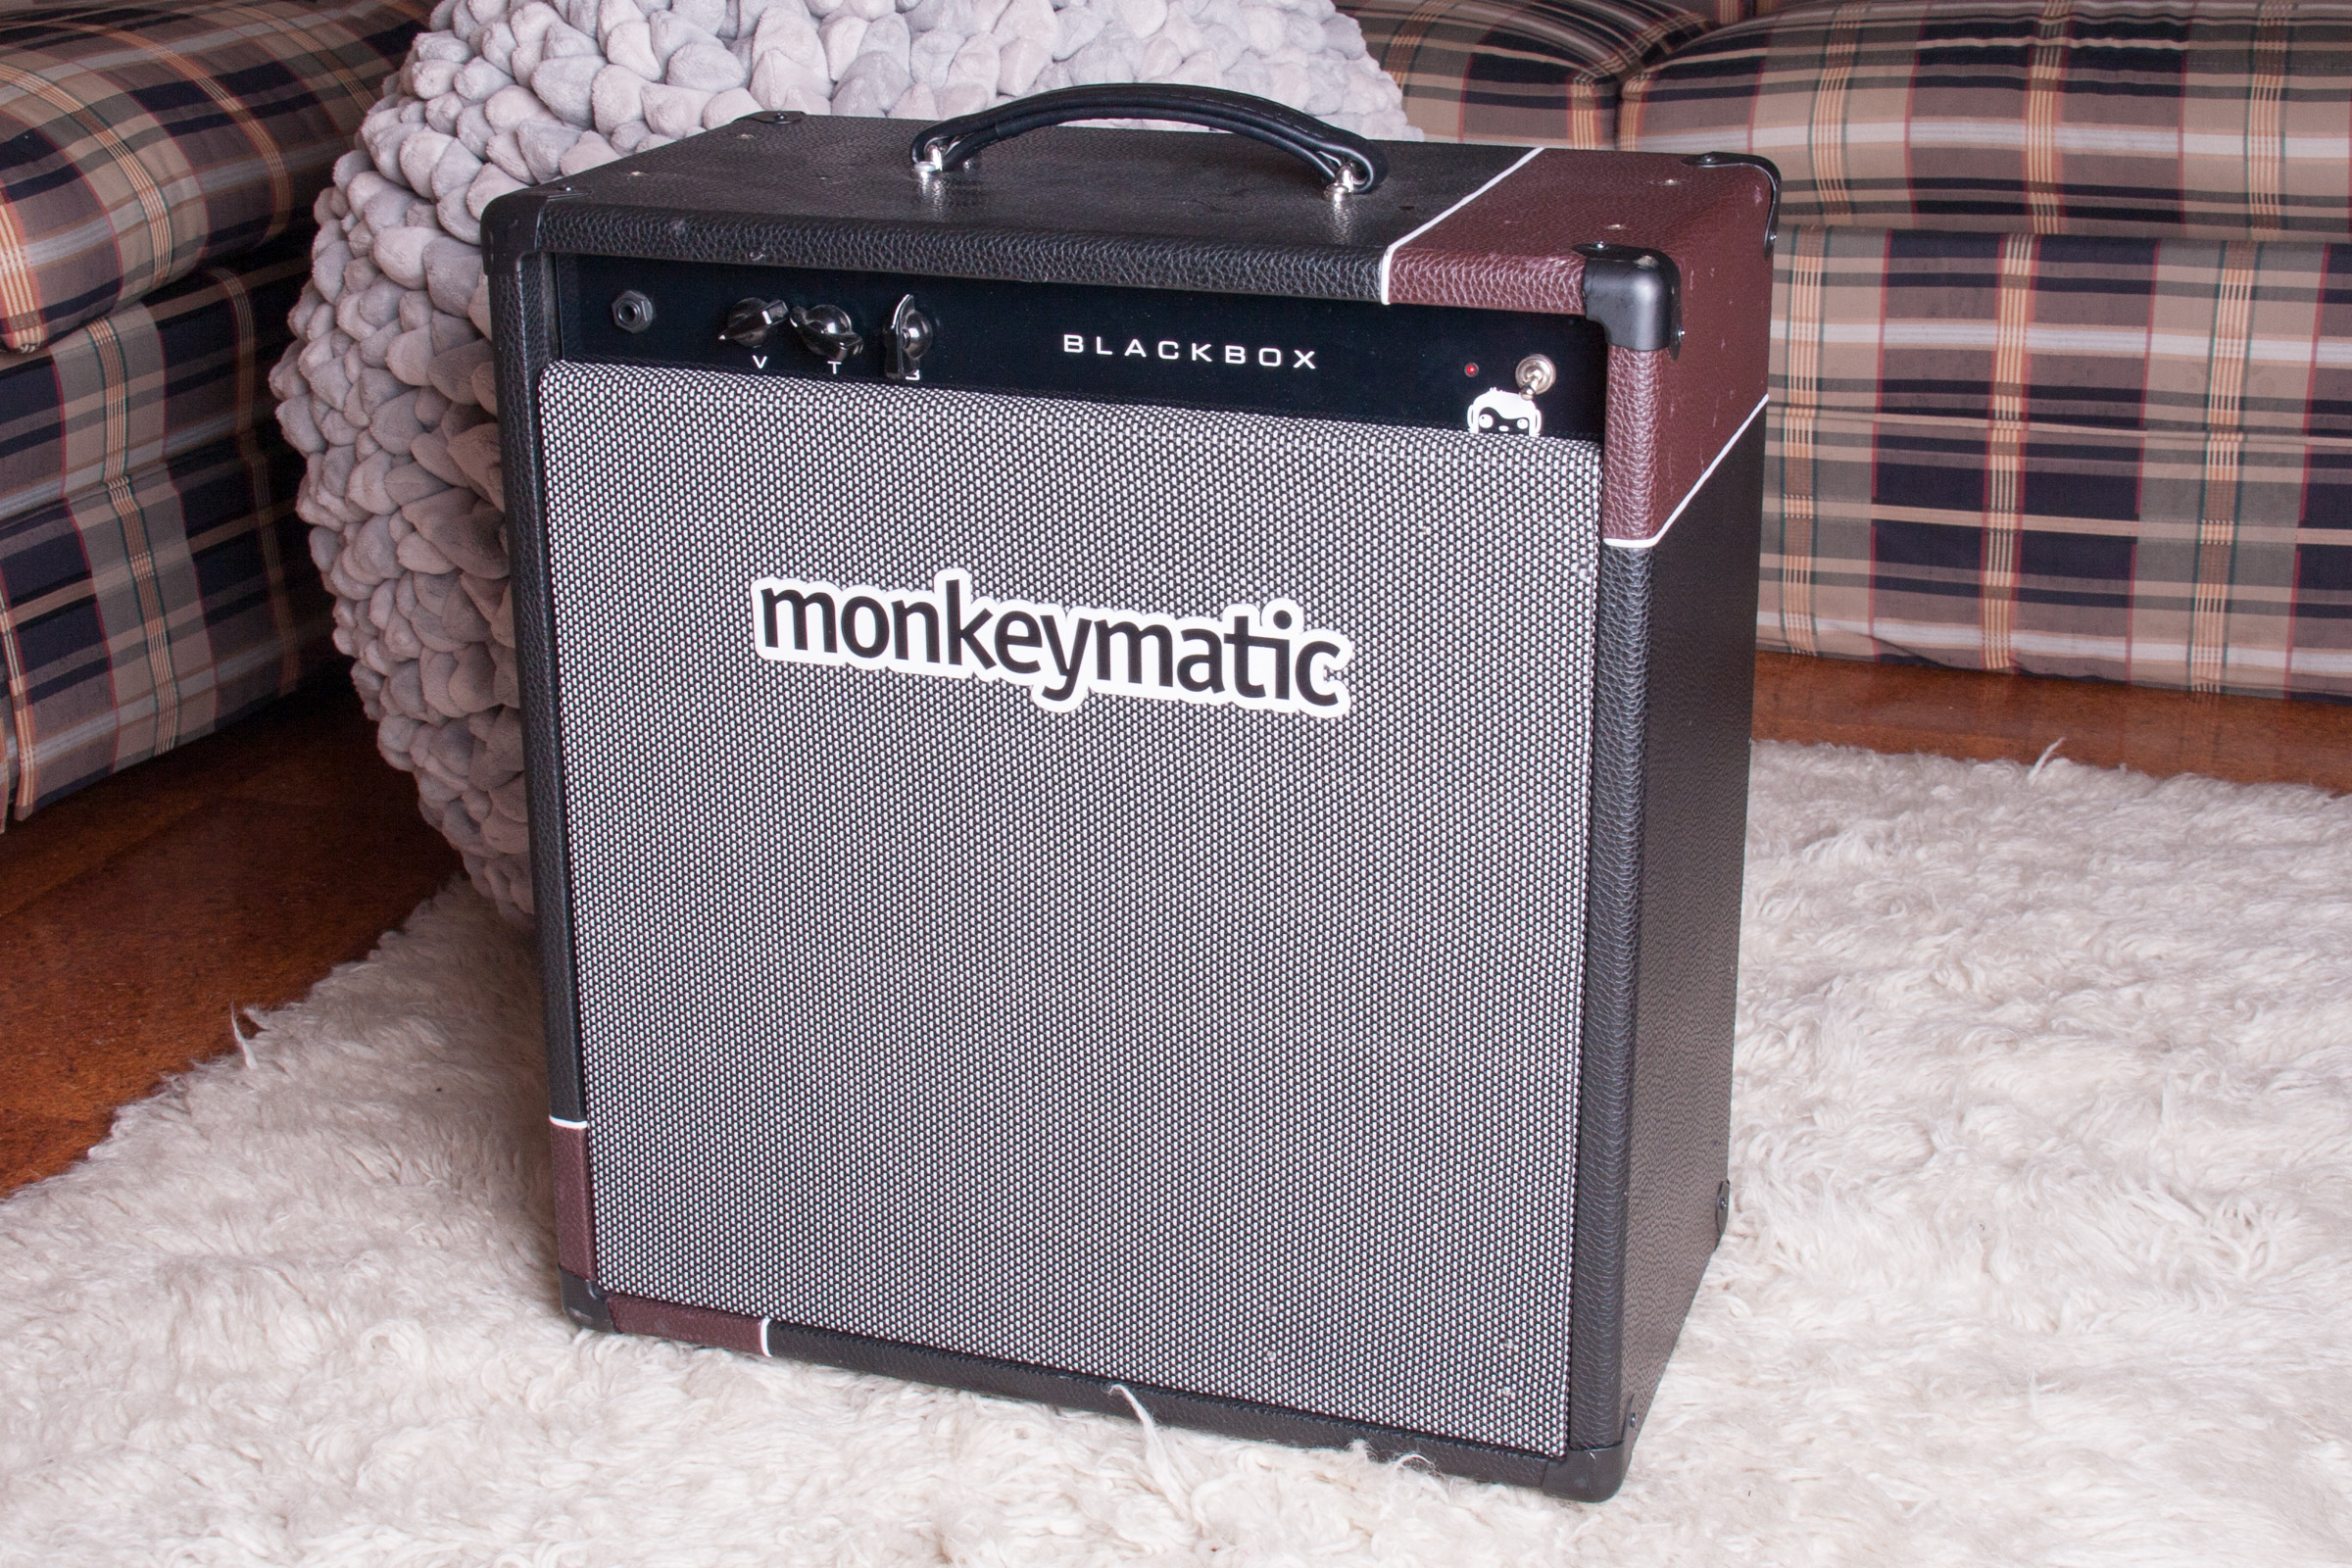 monkeymatic_blackbox-1.jpg